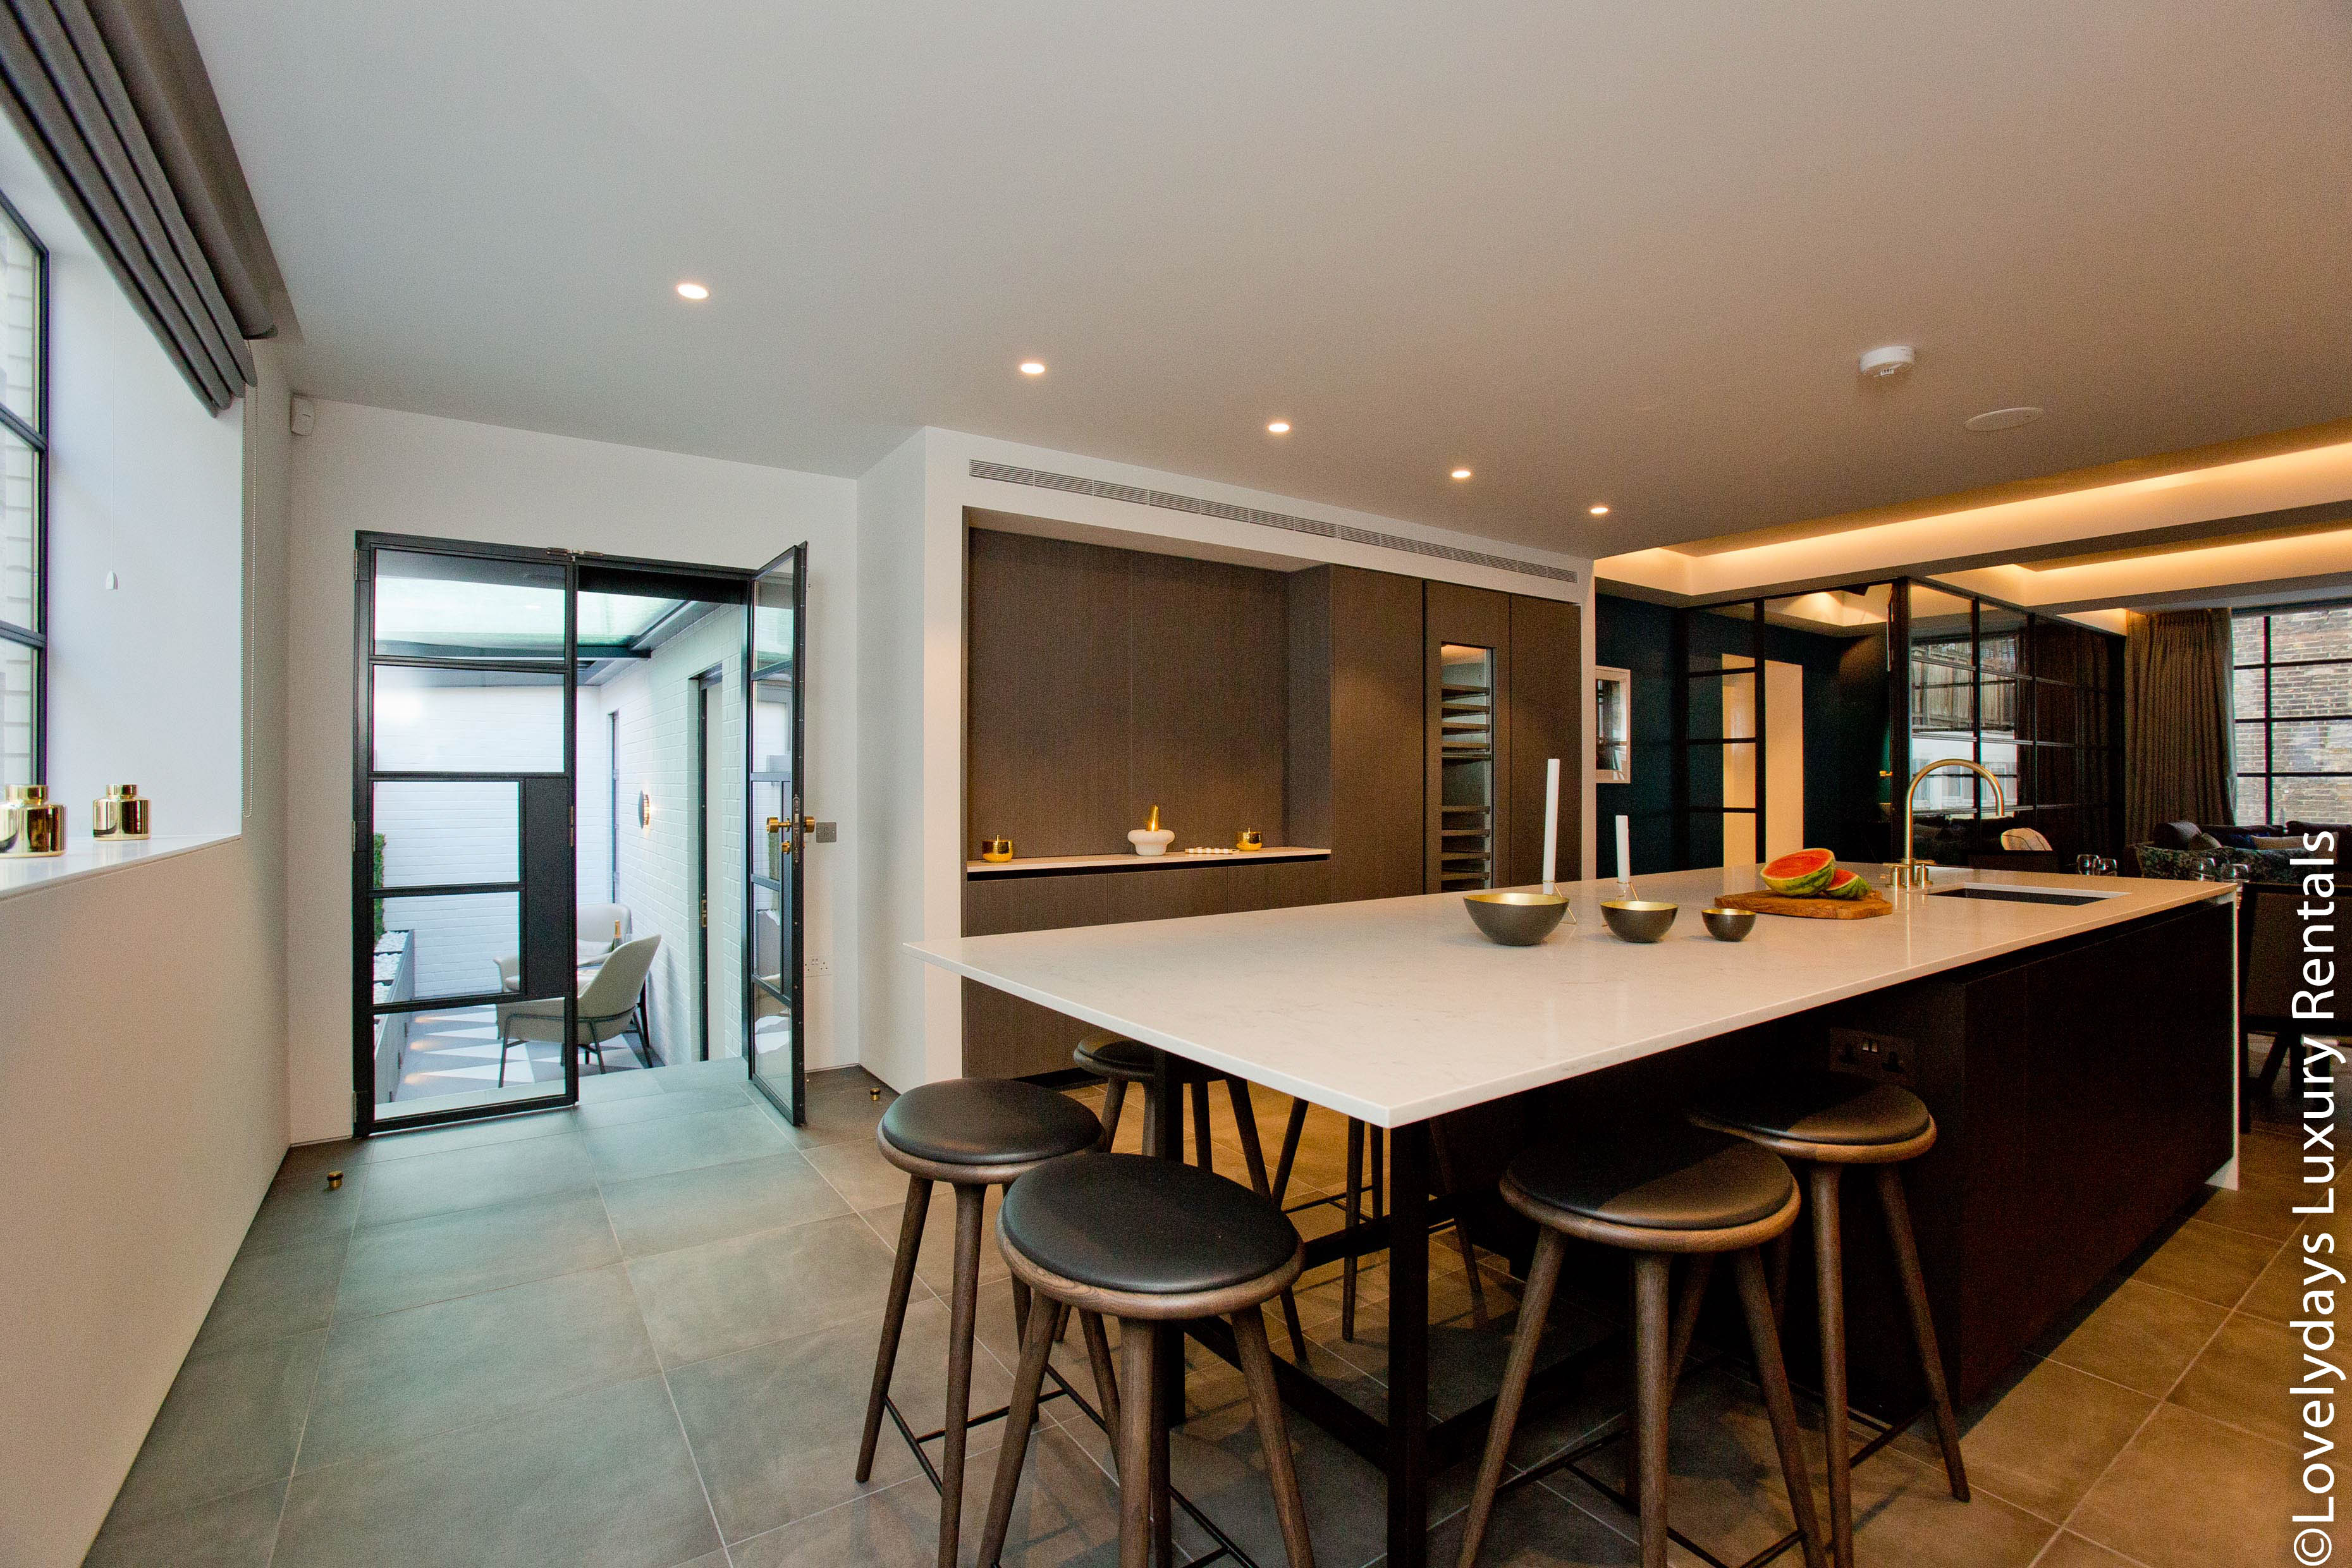 Lovelydays luxury service apartment rental - London - Soho - Royalty Mews III - Partner - 2 bedrooms - 2 bathrooms - Luxury kitchen - a338b802f277 - Lovelydays